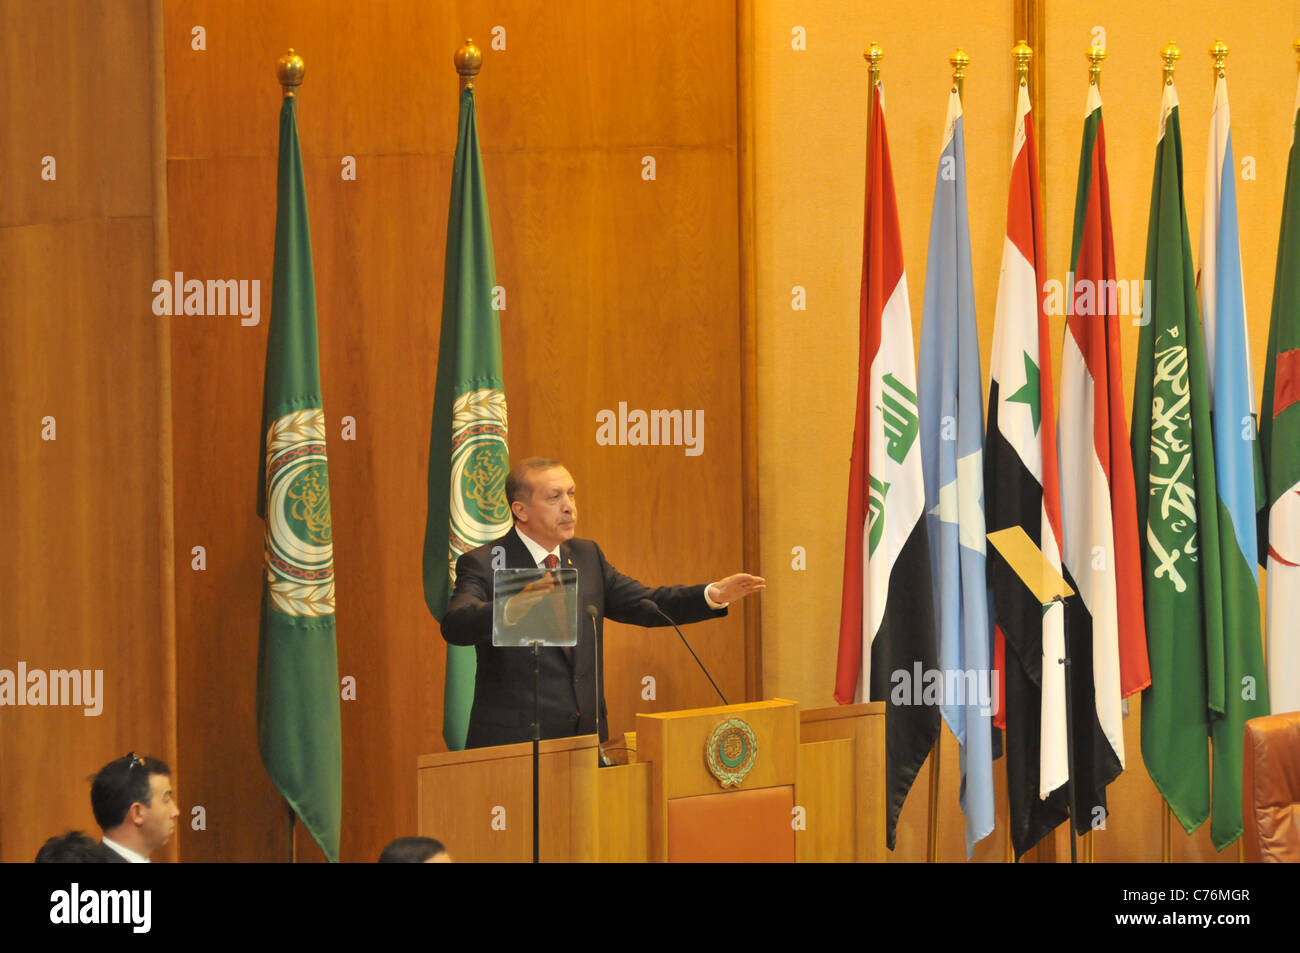 Turkish PM Erdogan addresses the Arab League during his visit to Egypt where he also met with Egypt's Military - Stock Image